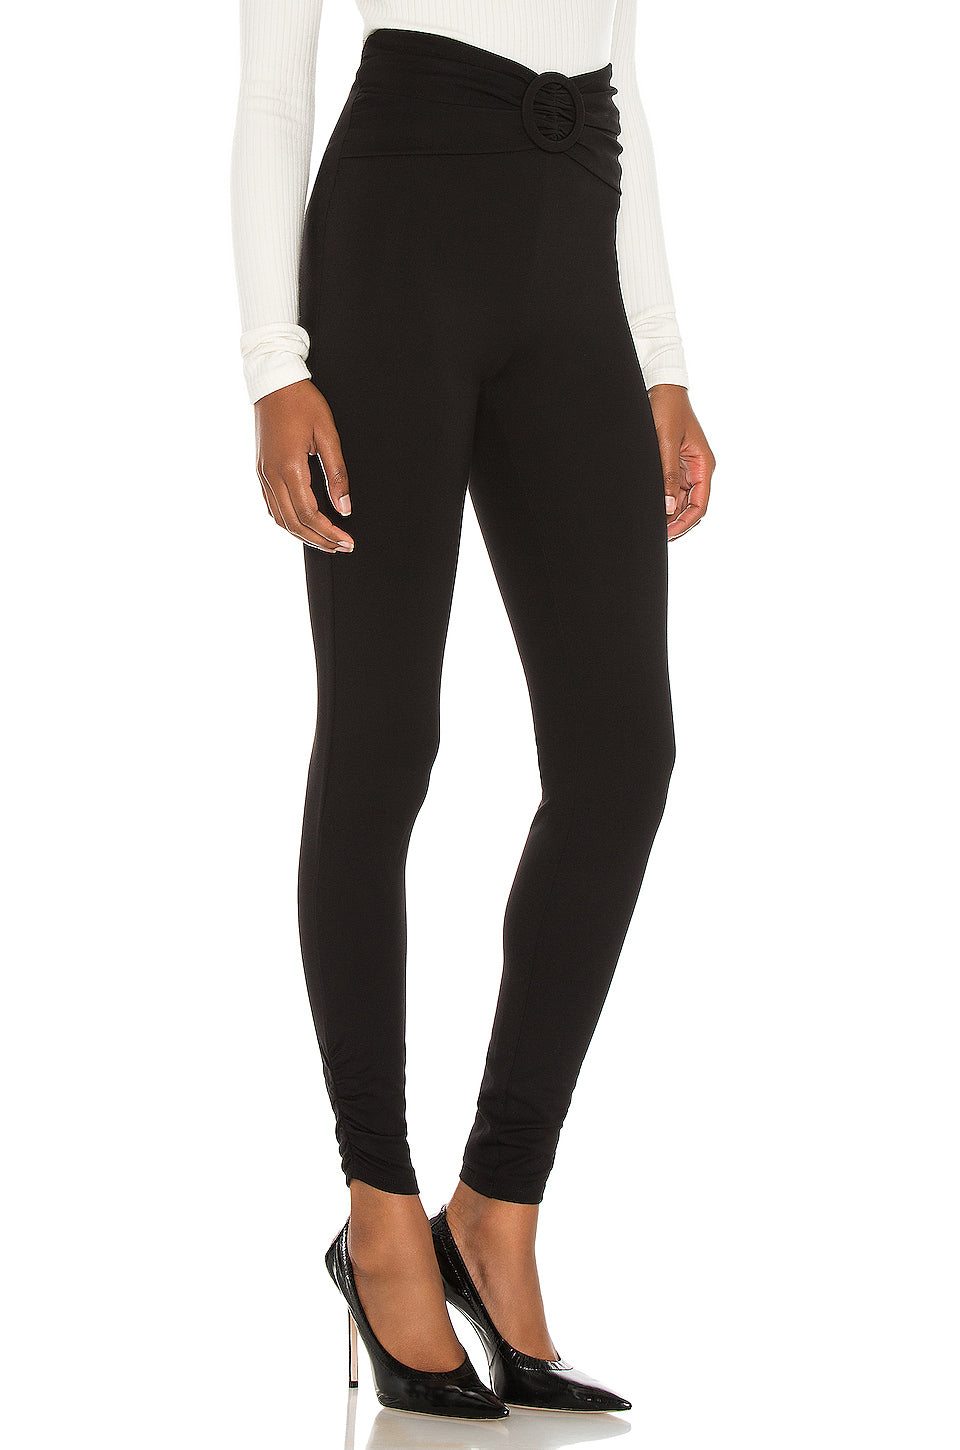 Suzette Legging